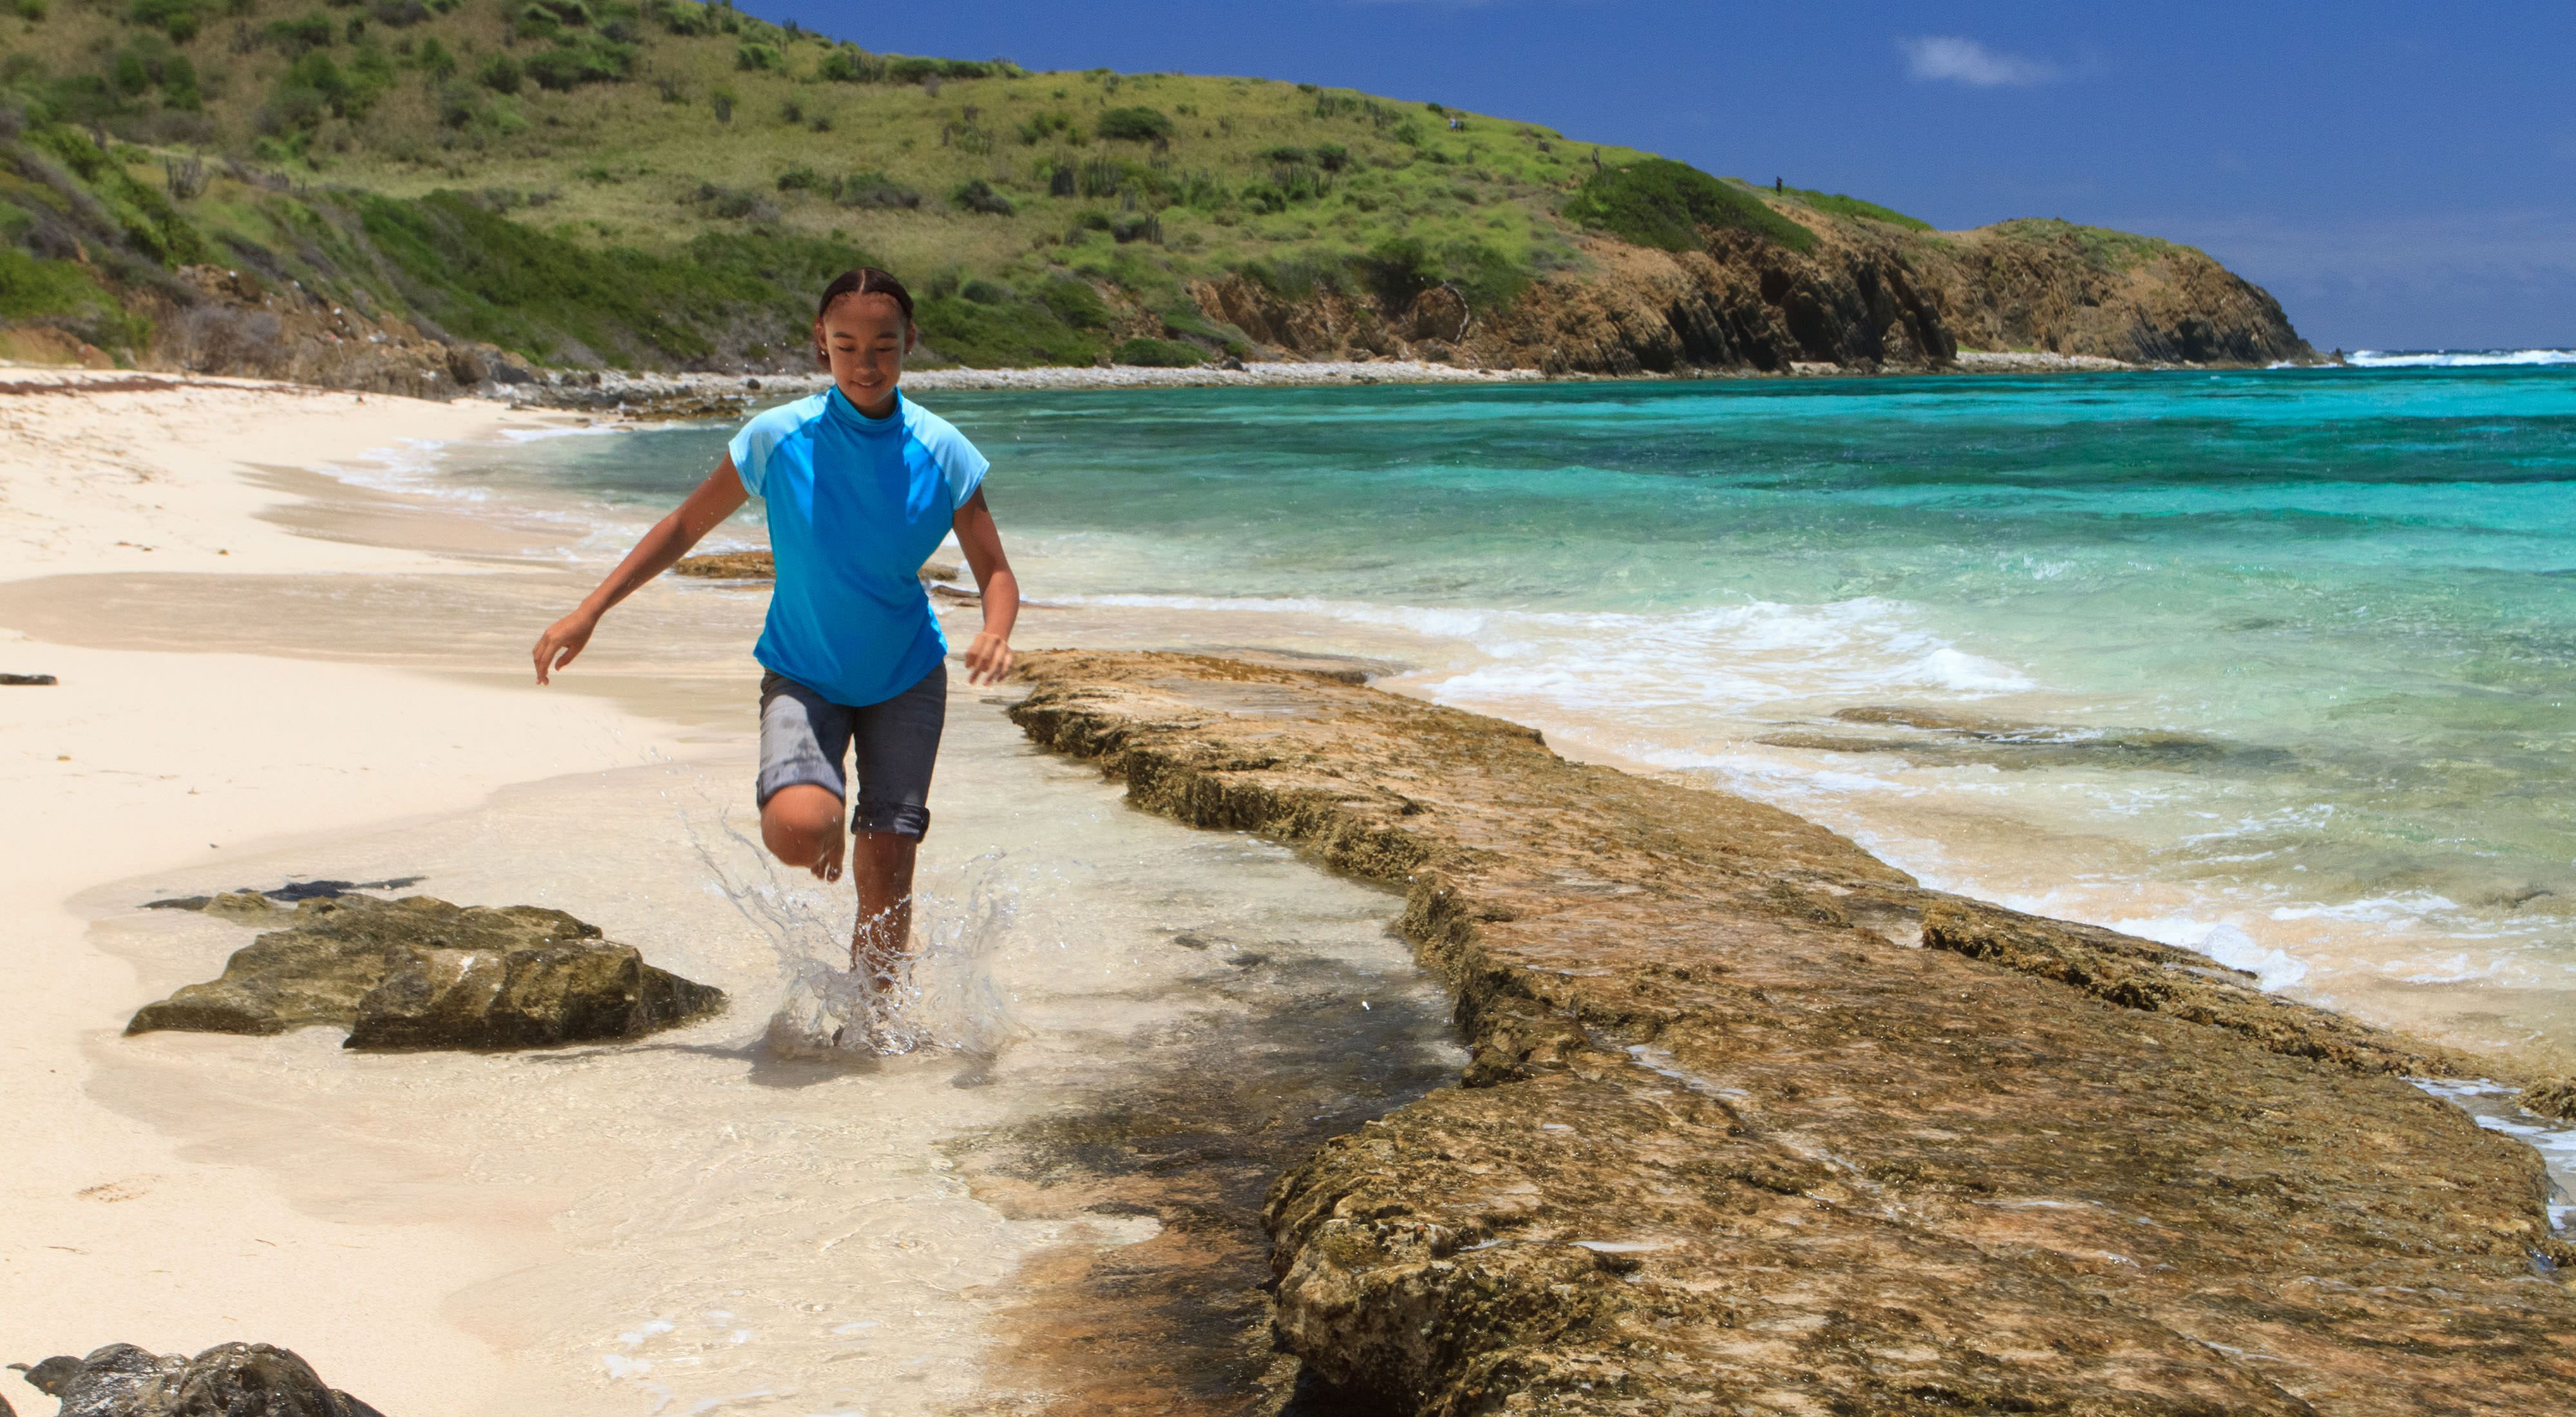 A girl runs along the beach at Jack and Isaac Bay Preserve in St. Croix, U.S. Virgin Islands.